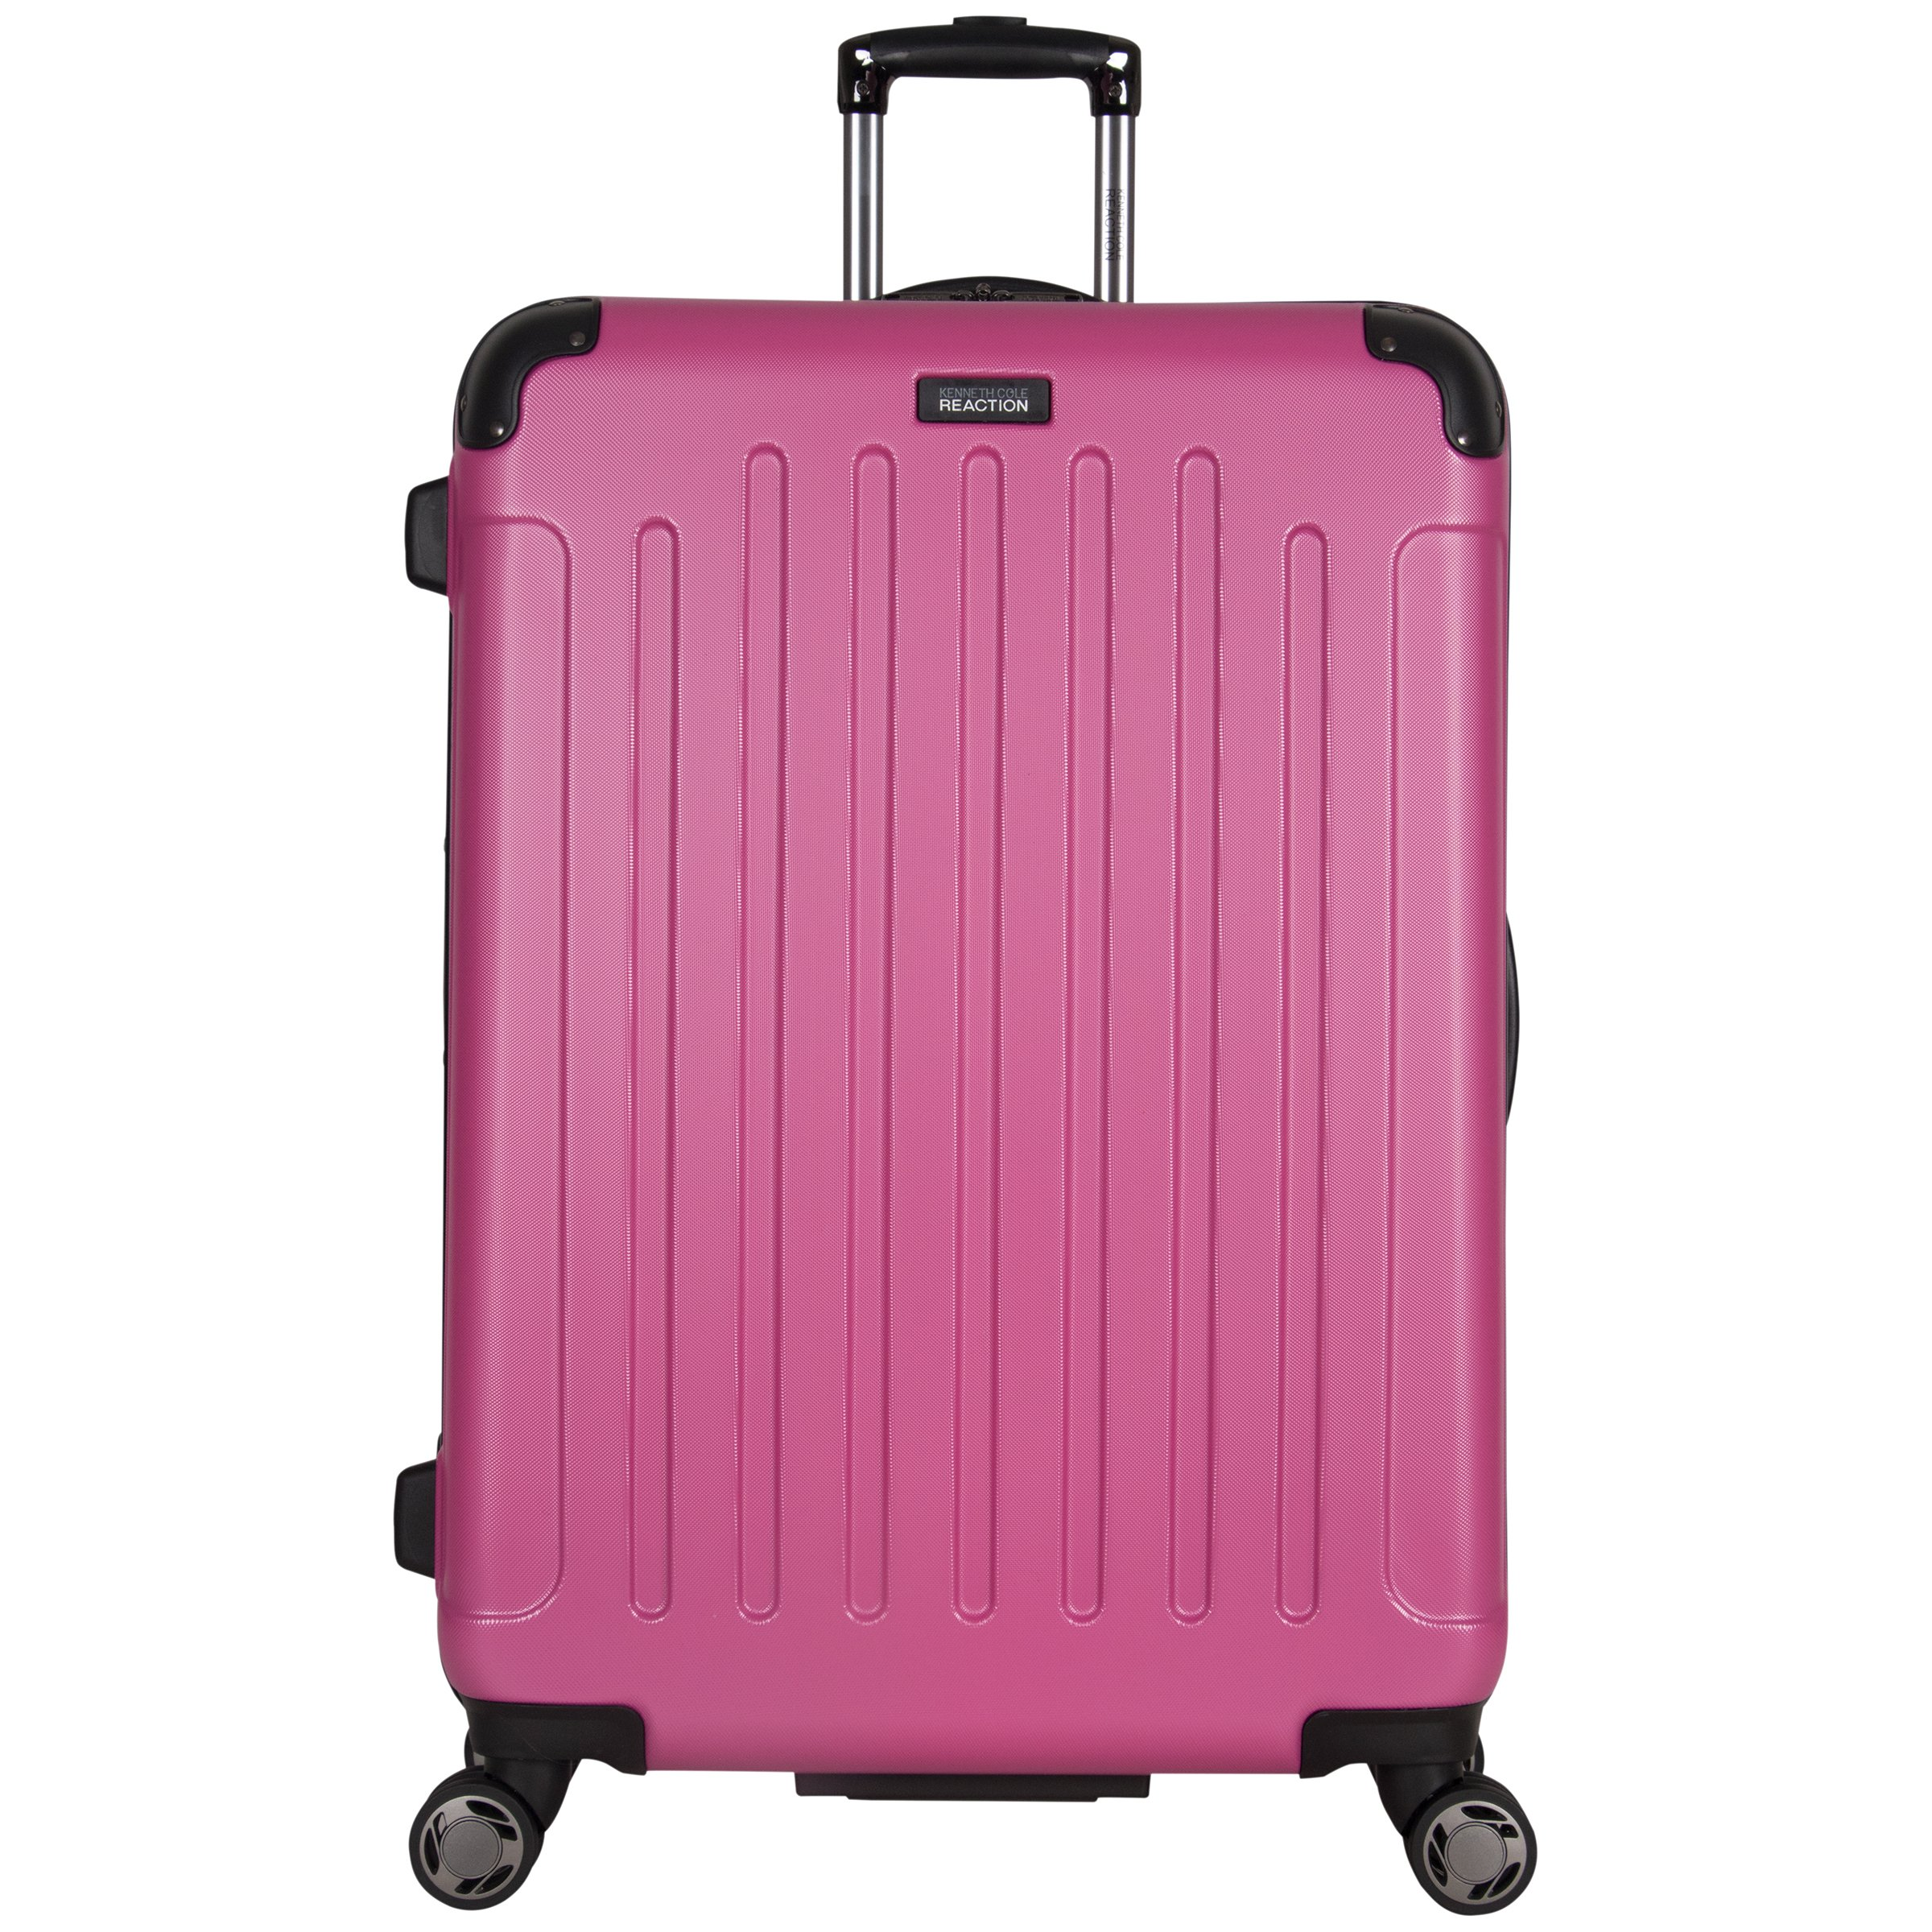 Kenneth Cole Reaction 28'' Abs 8-wheel Upright Suitcase, Magenta by Kenneth Cole REACTION